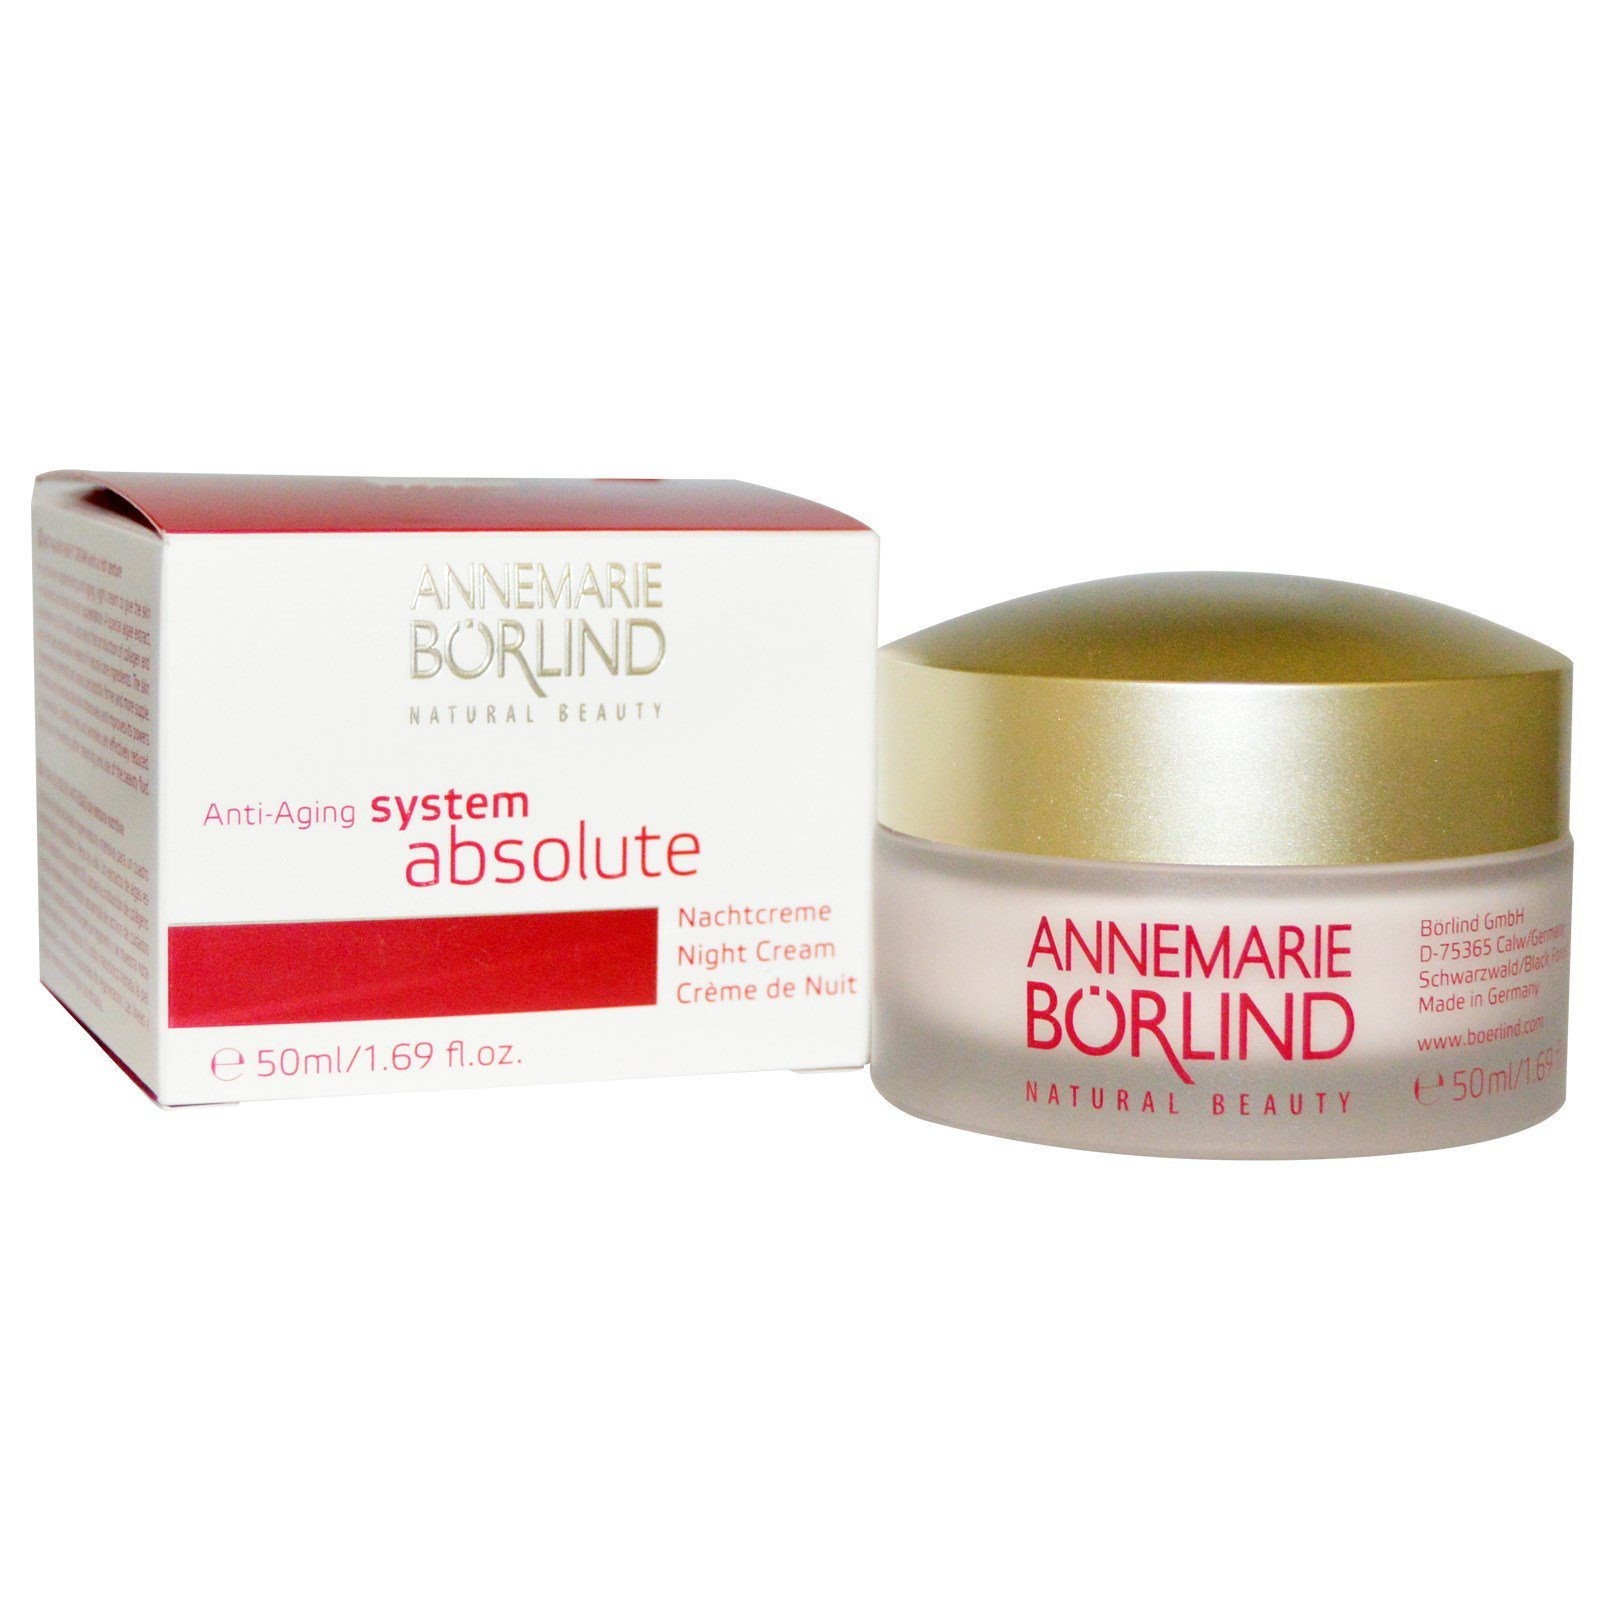 Borlind Of Germany Annemarie Borlind System Absolute Night Cream - 1.69 Oz Burt's Bees 100% Natural Moisturizing Tinted Lip Oil, Caramel Cloud, 1 ct